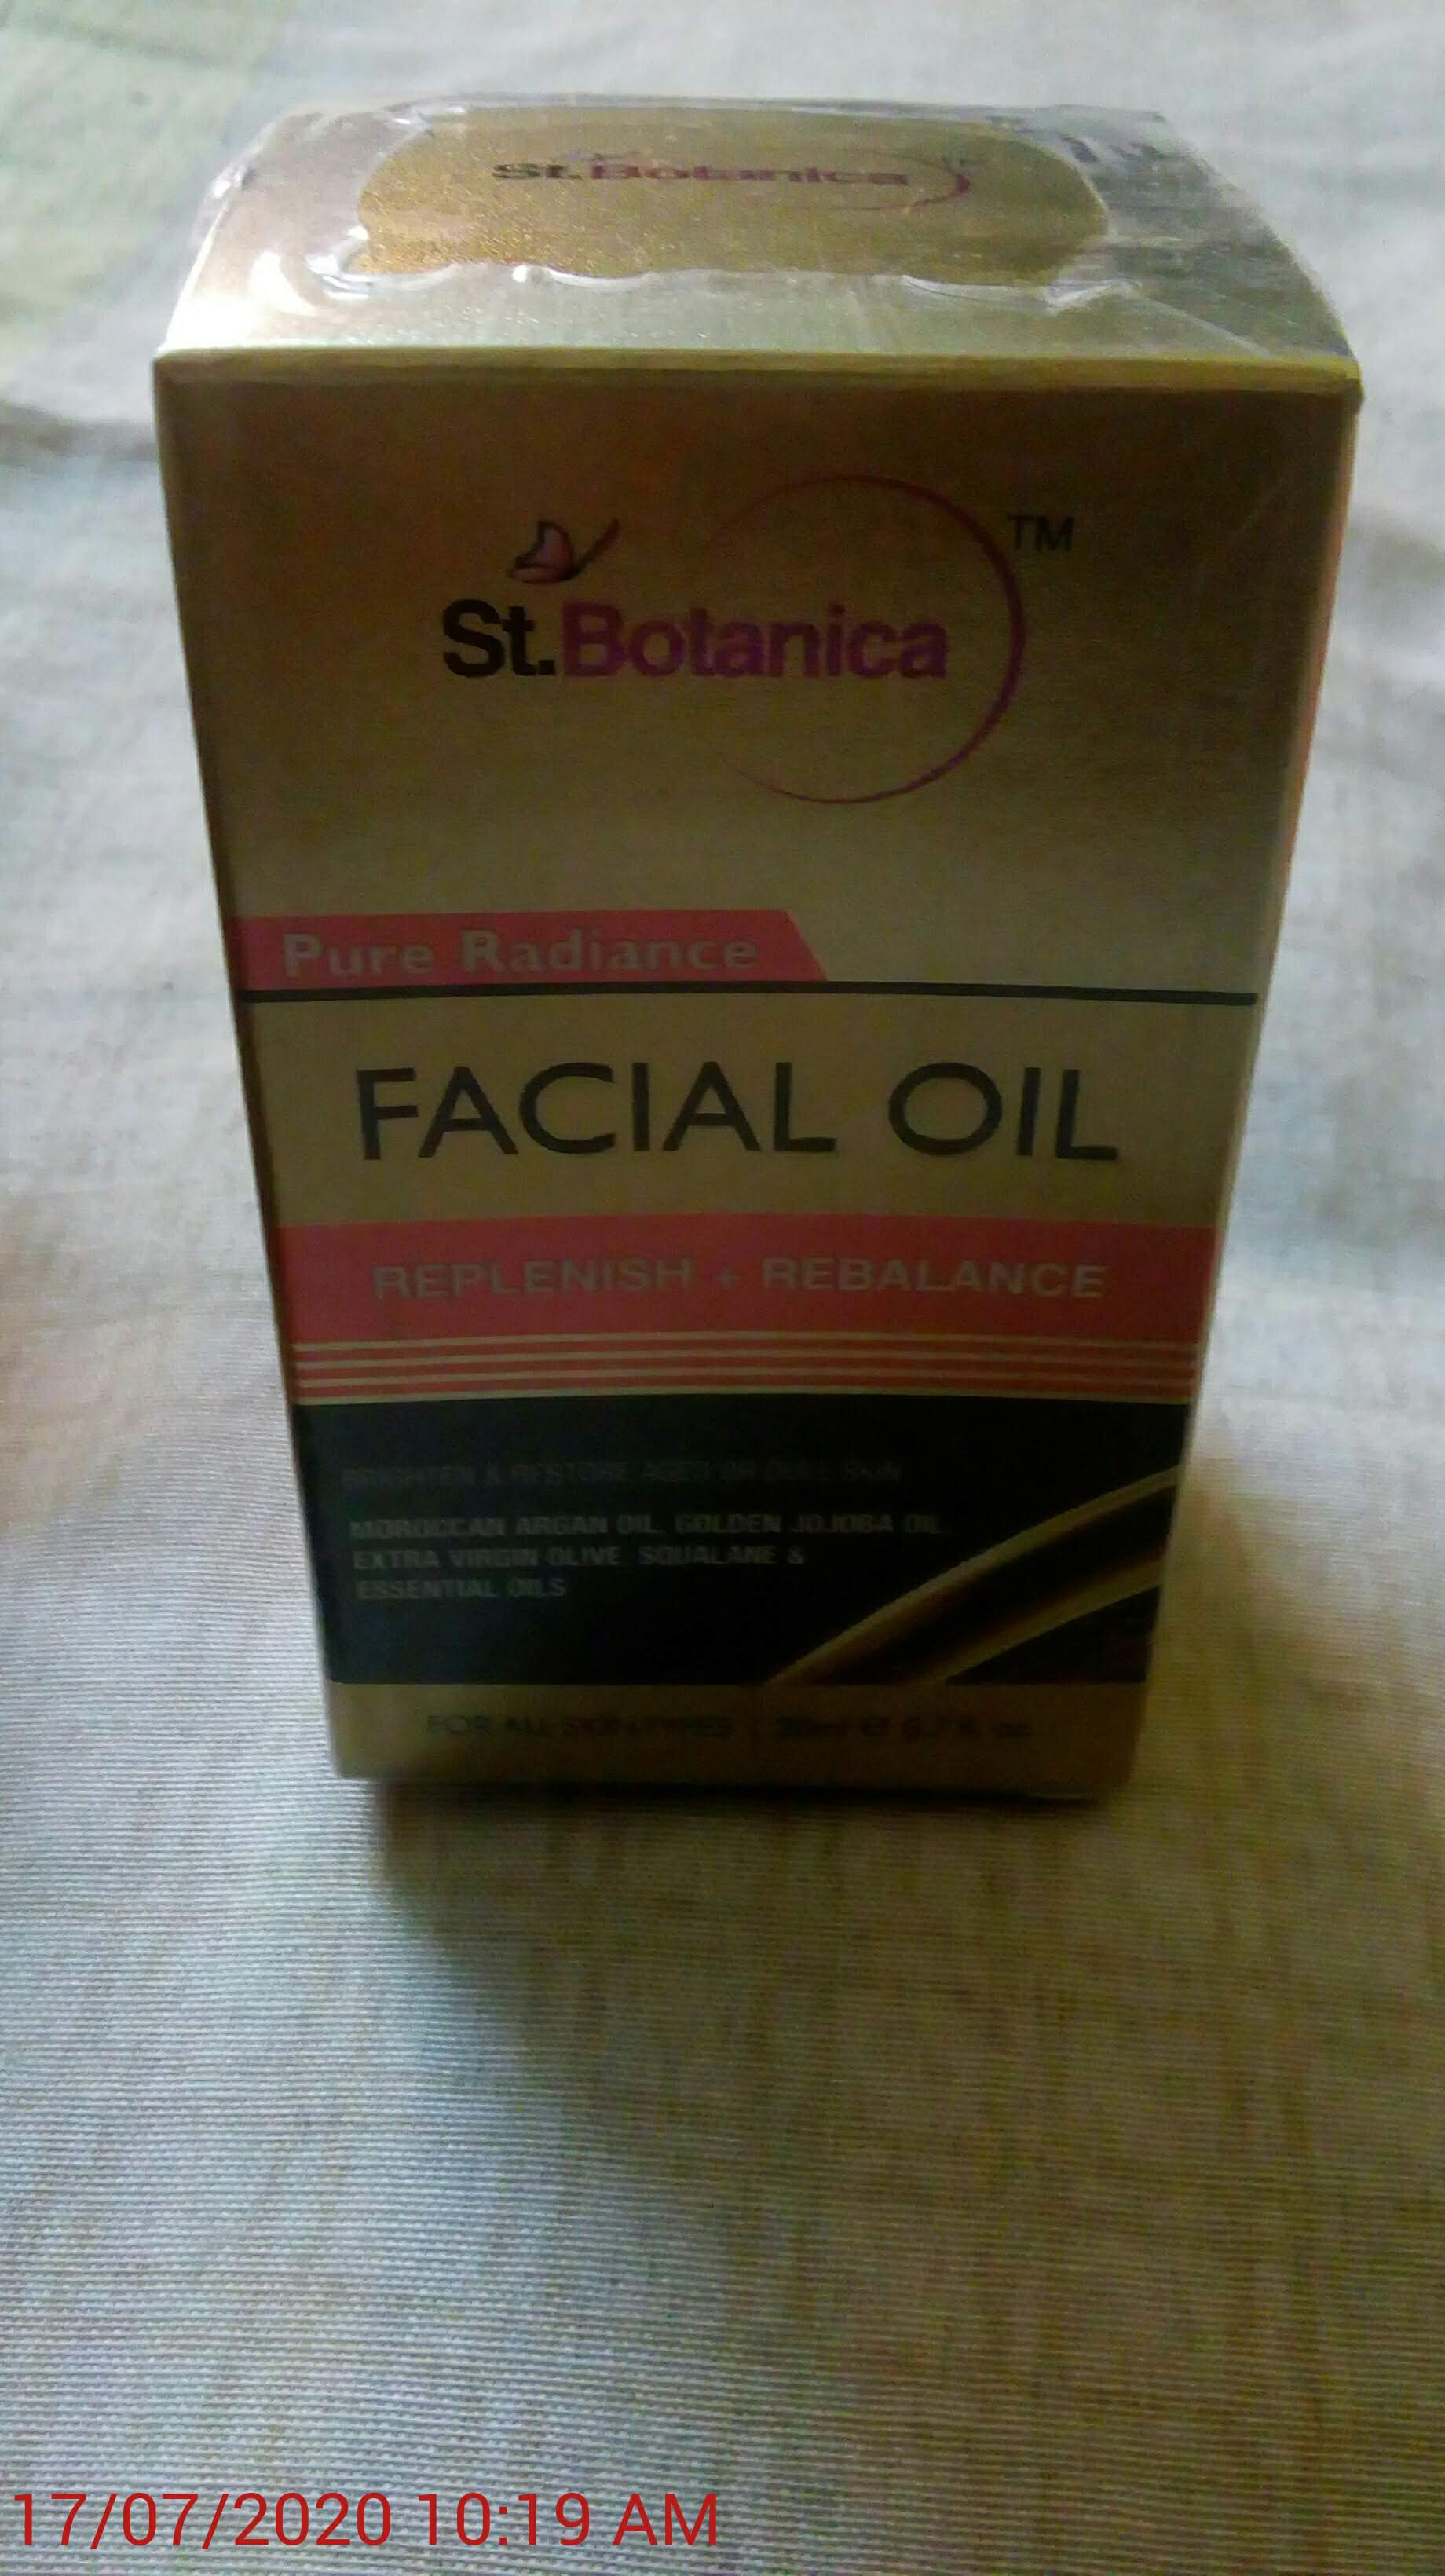 StBotanica Pure Radiance Facial Oil-Amazing face oil-By harishmanek2006@yahoo.com